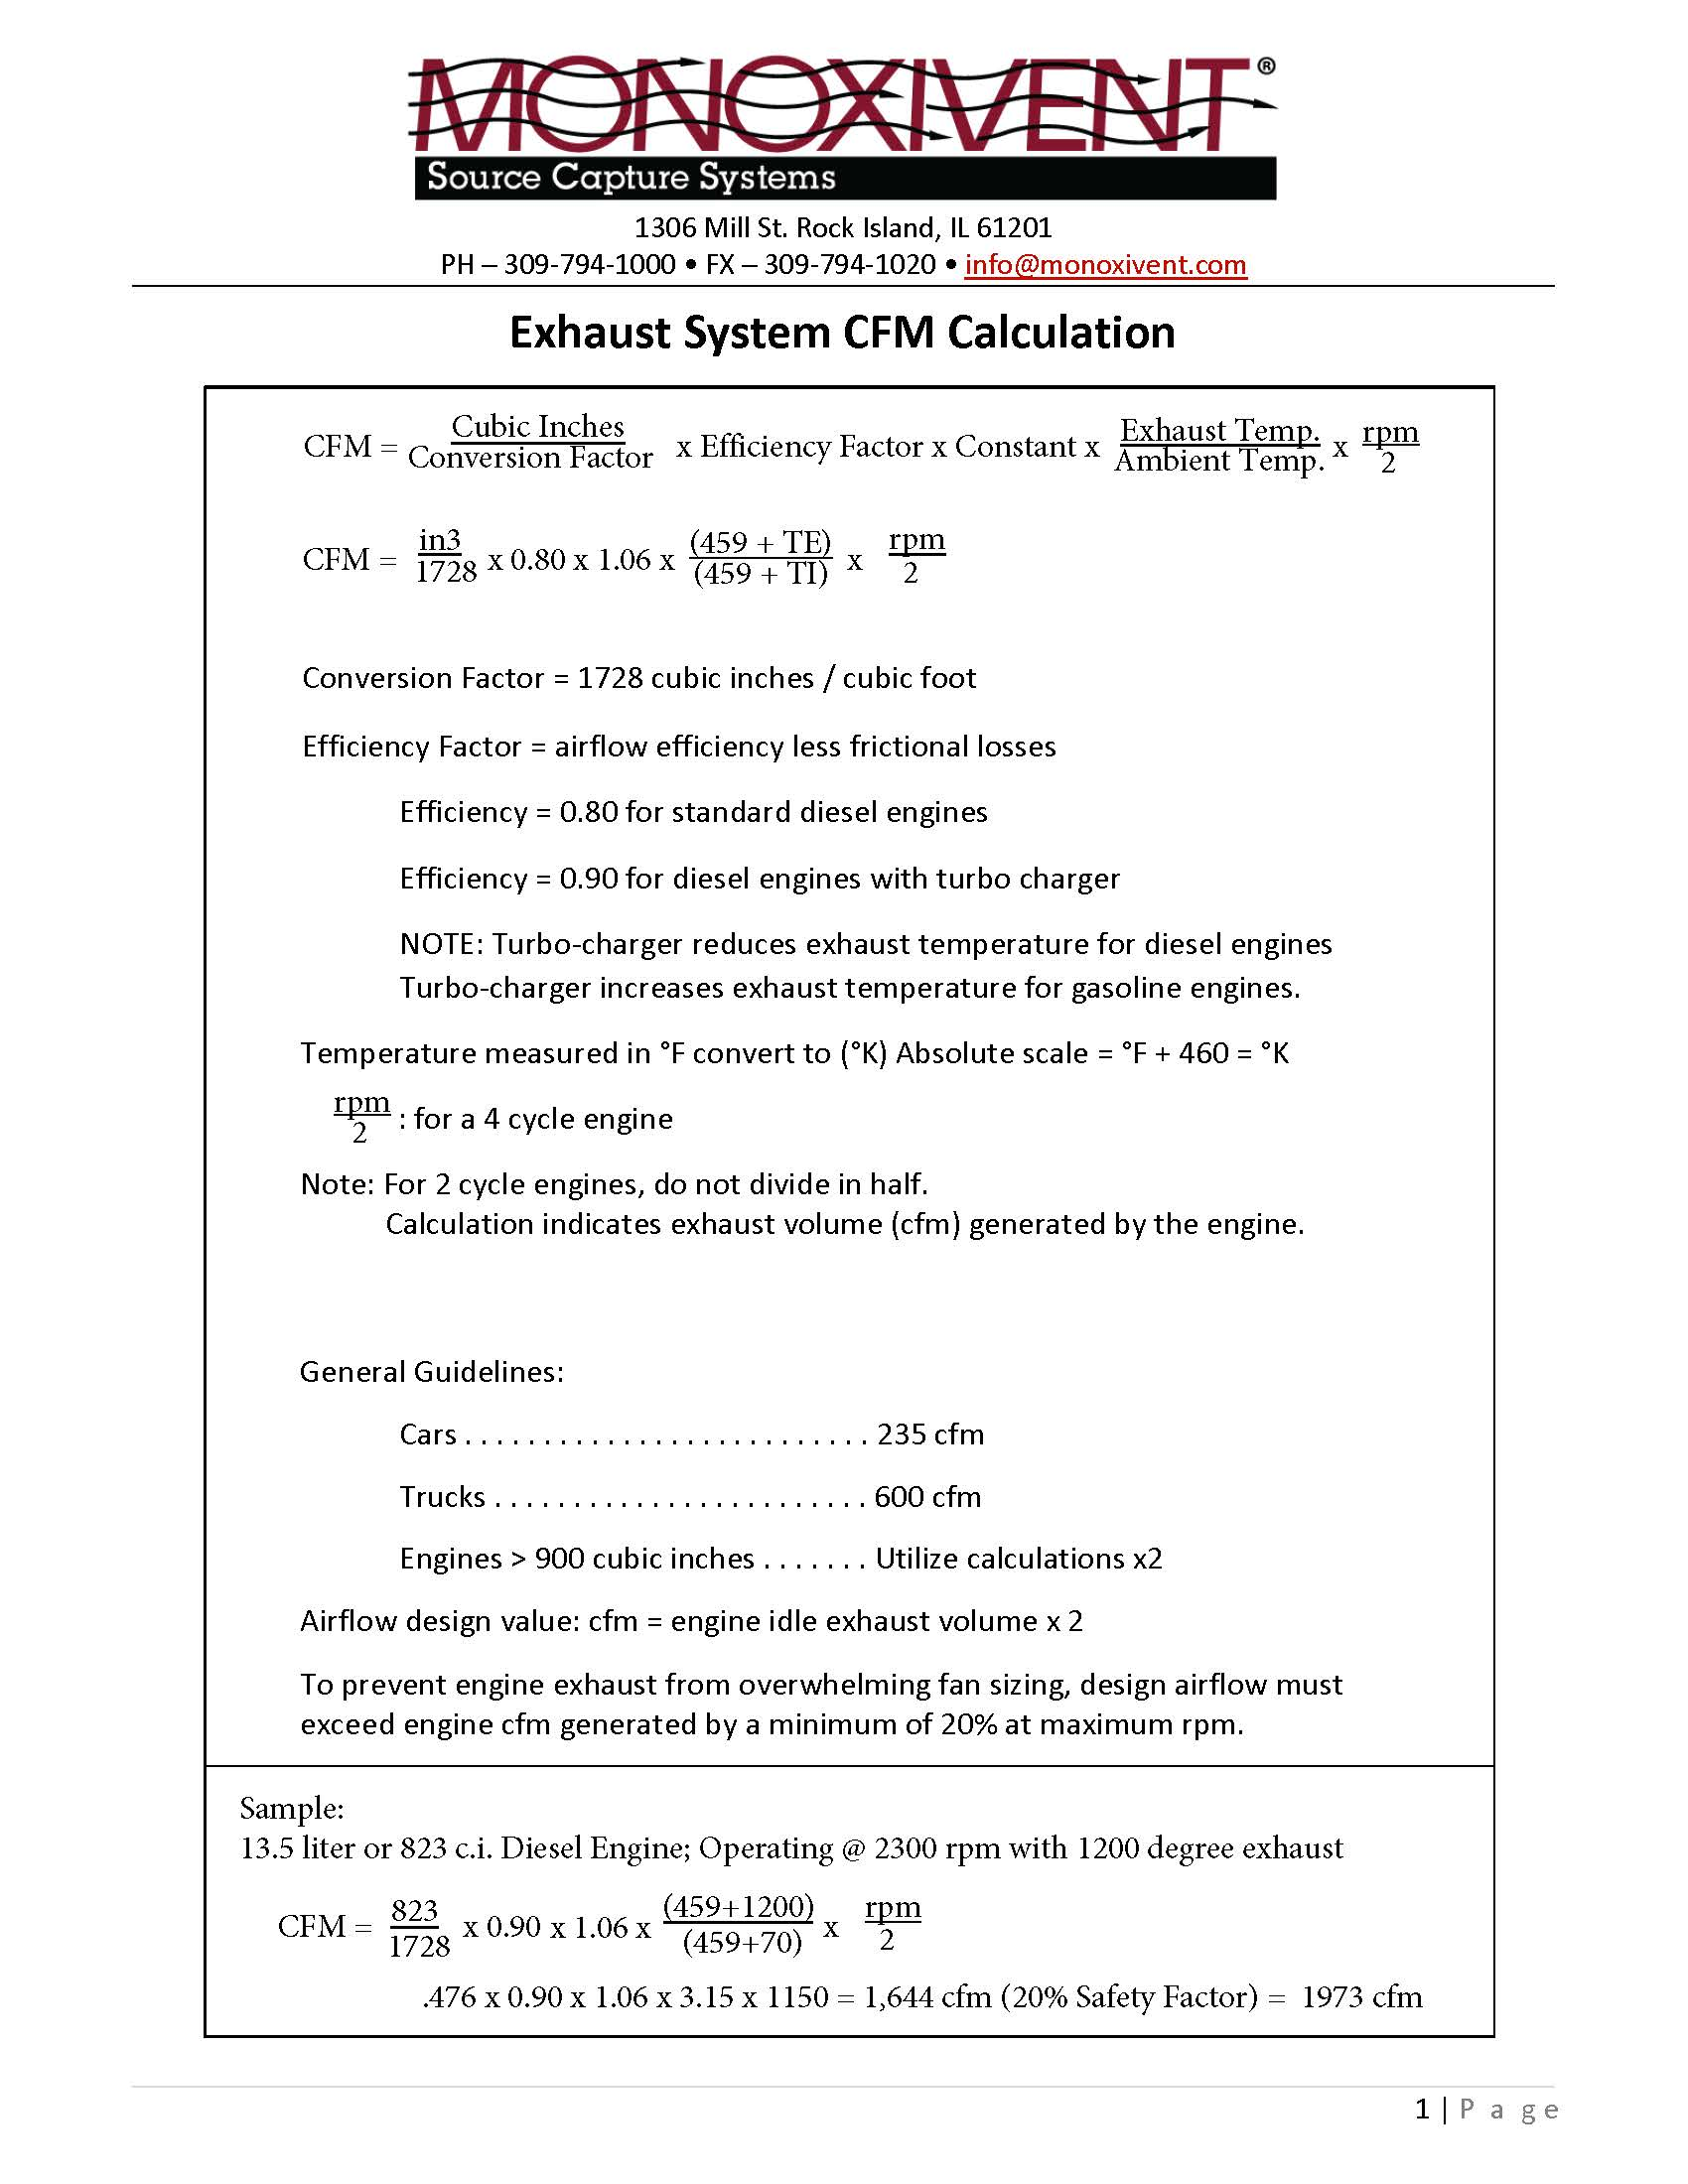 Exhaust System CFM Calculation